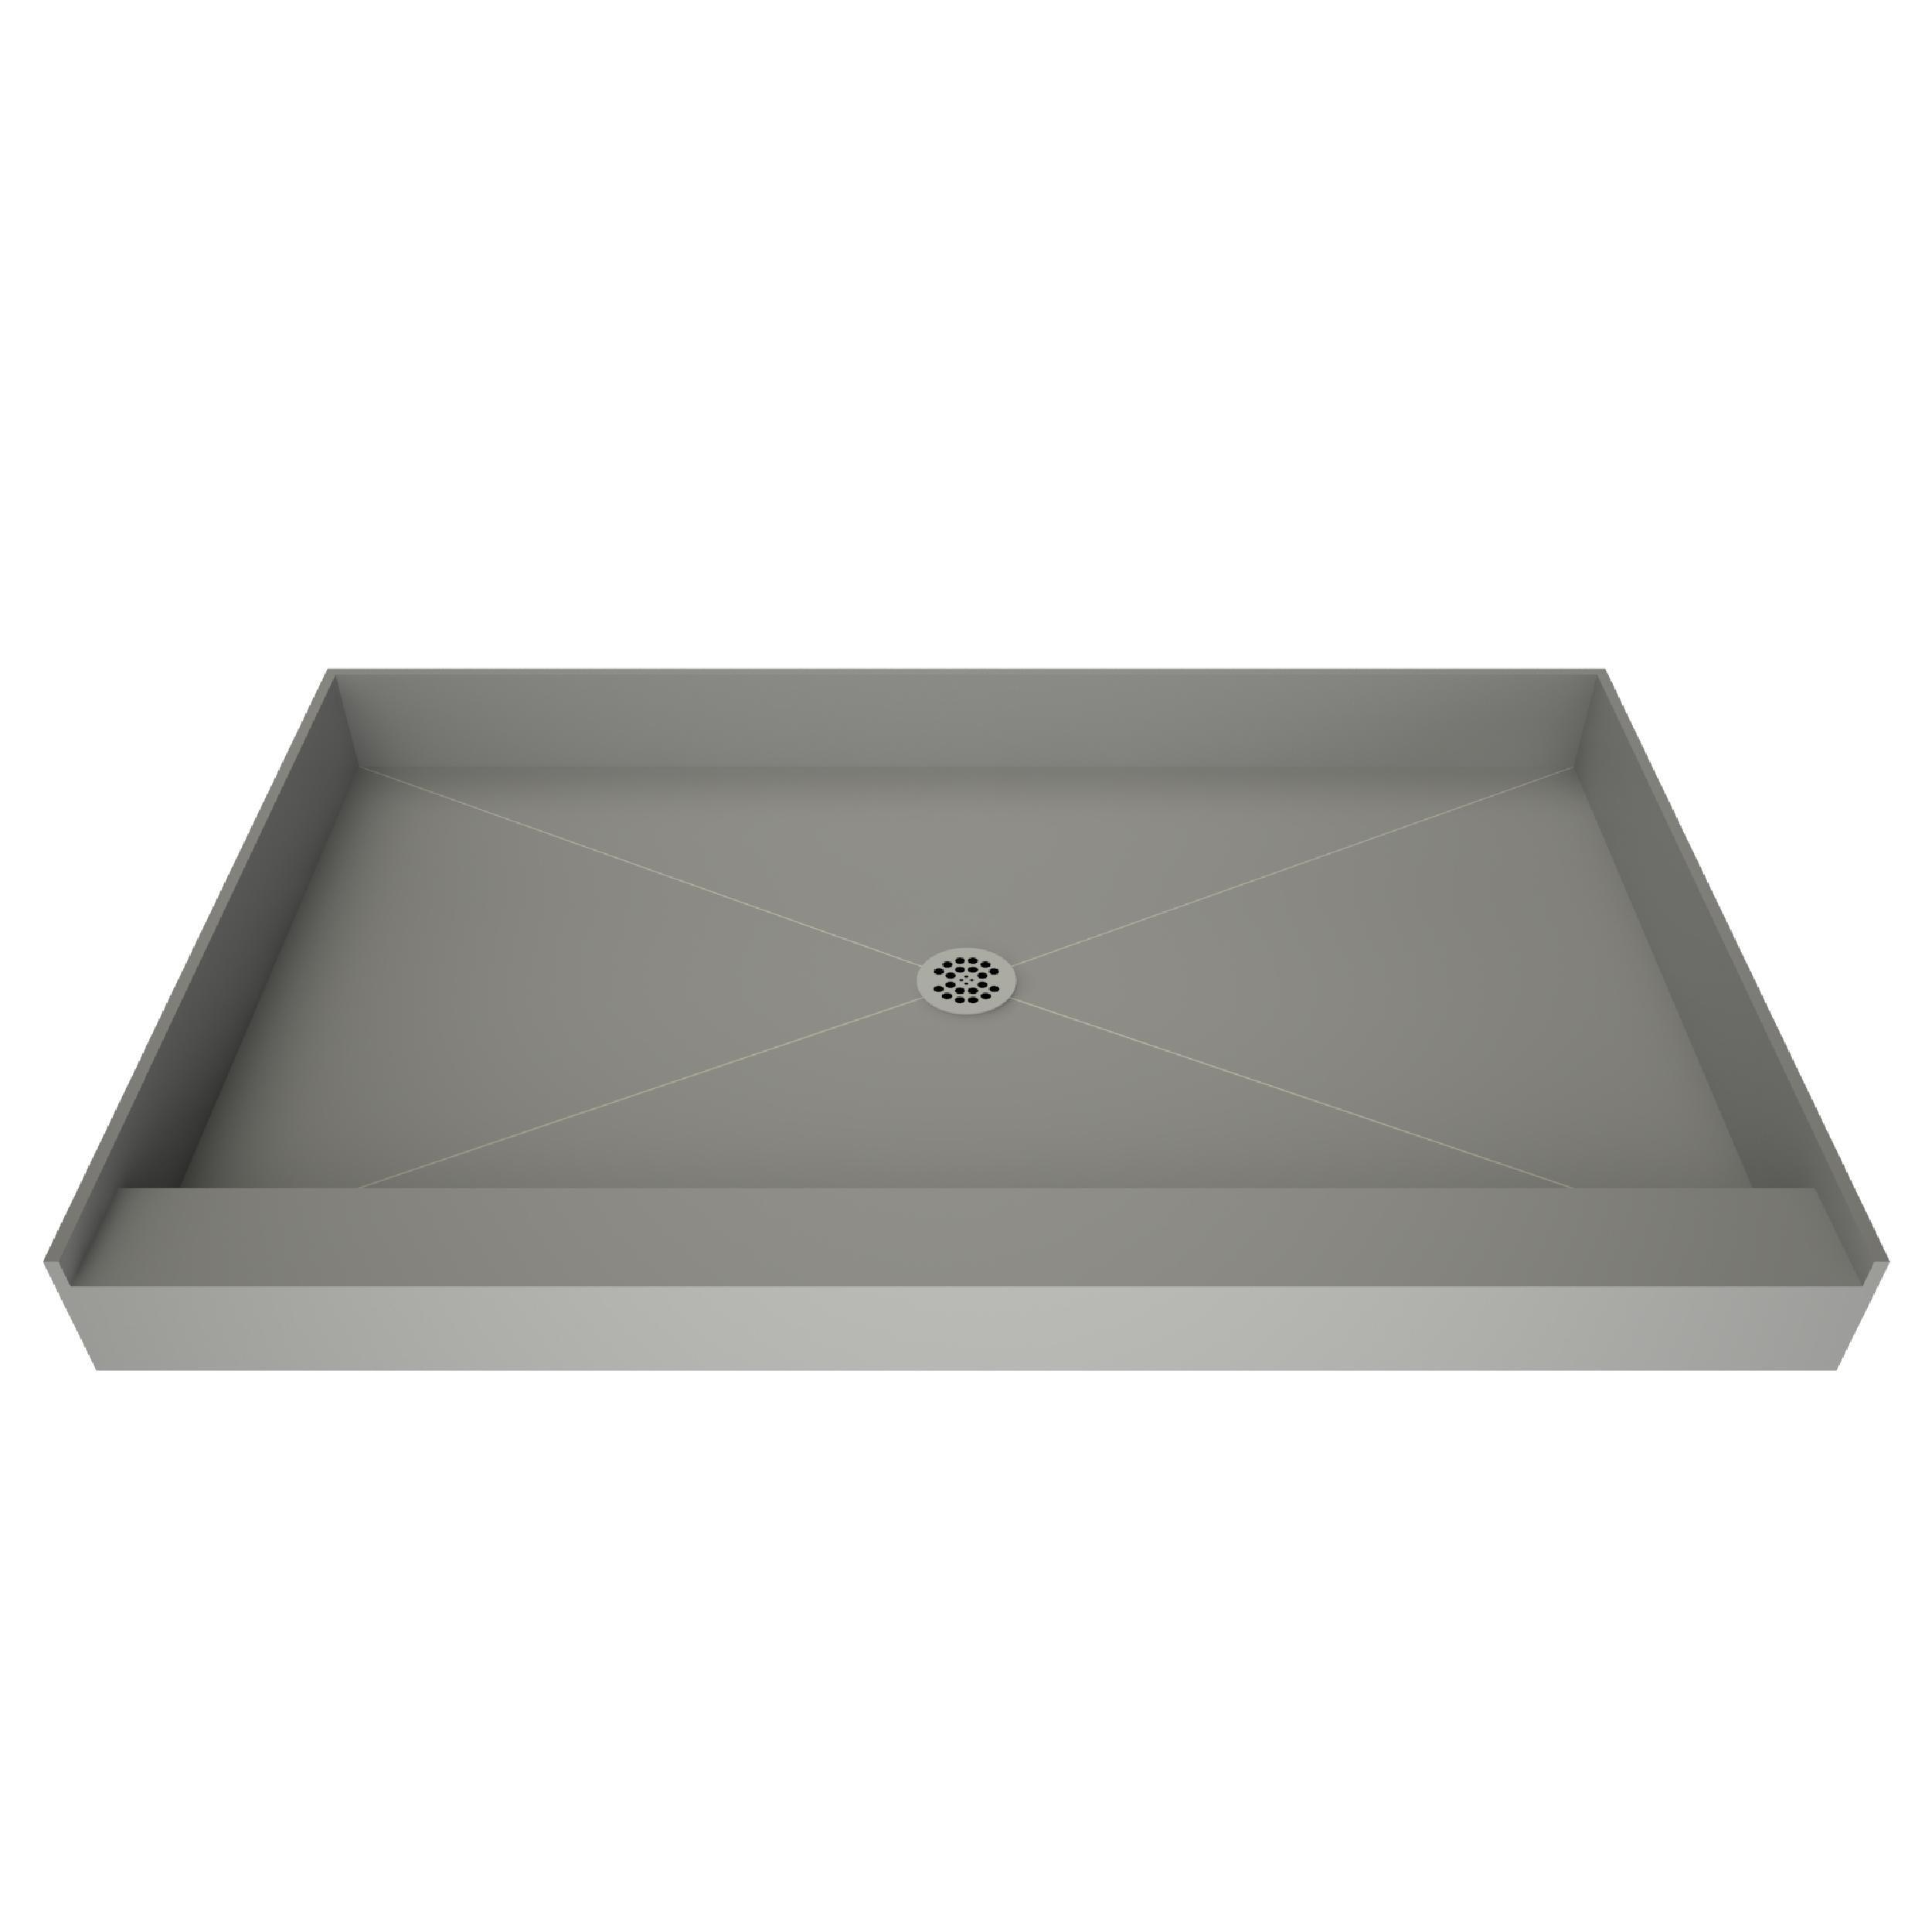 Tile Redi Single Curb Shower Pan With Center Drain   37in. X 60in.    100067164 | Floor And Decor